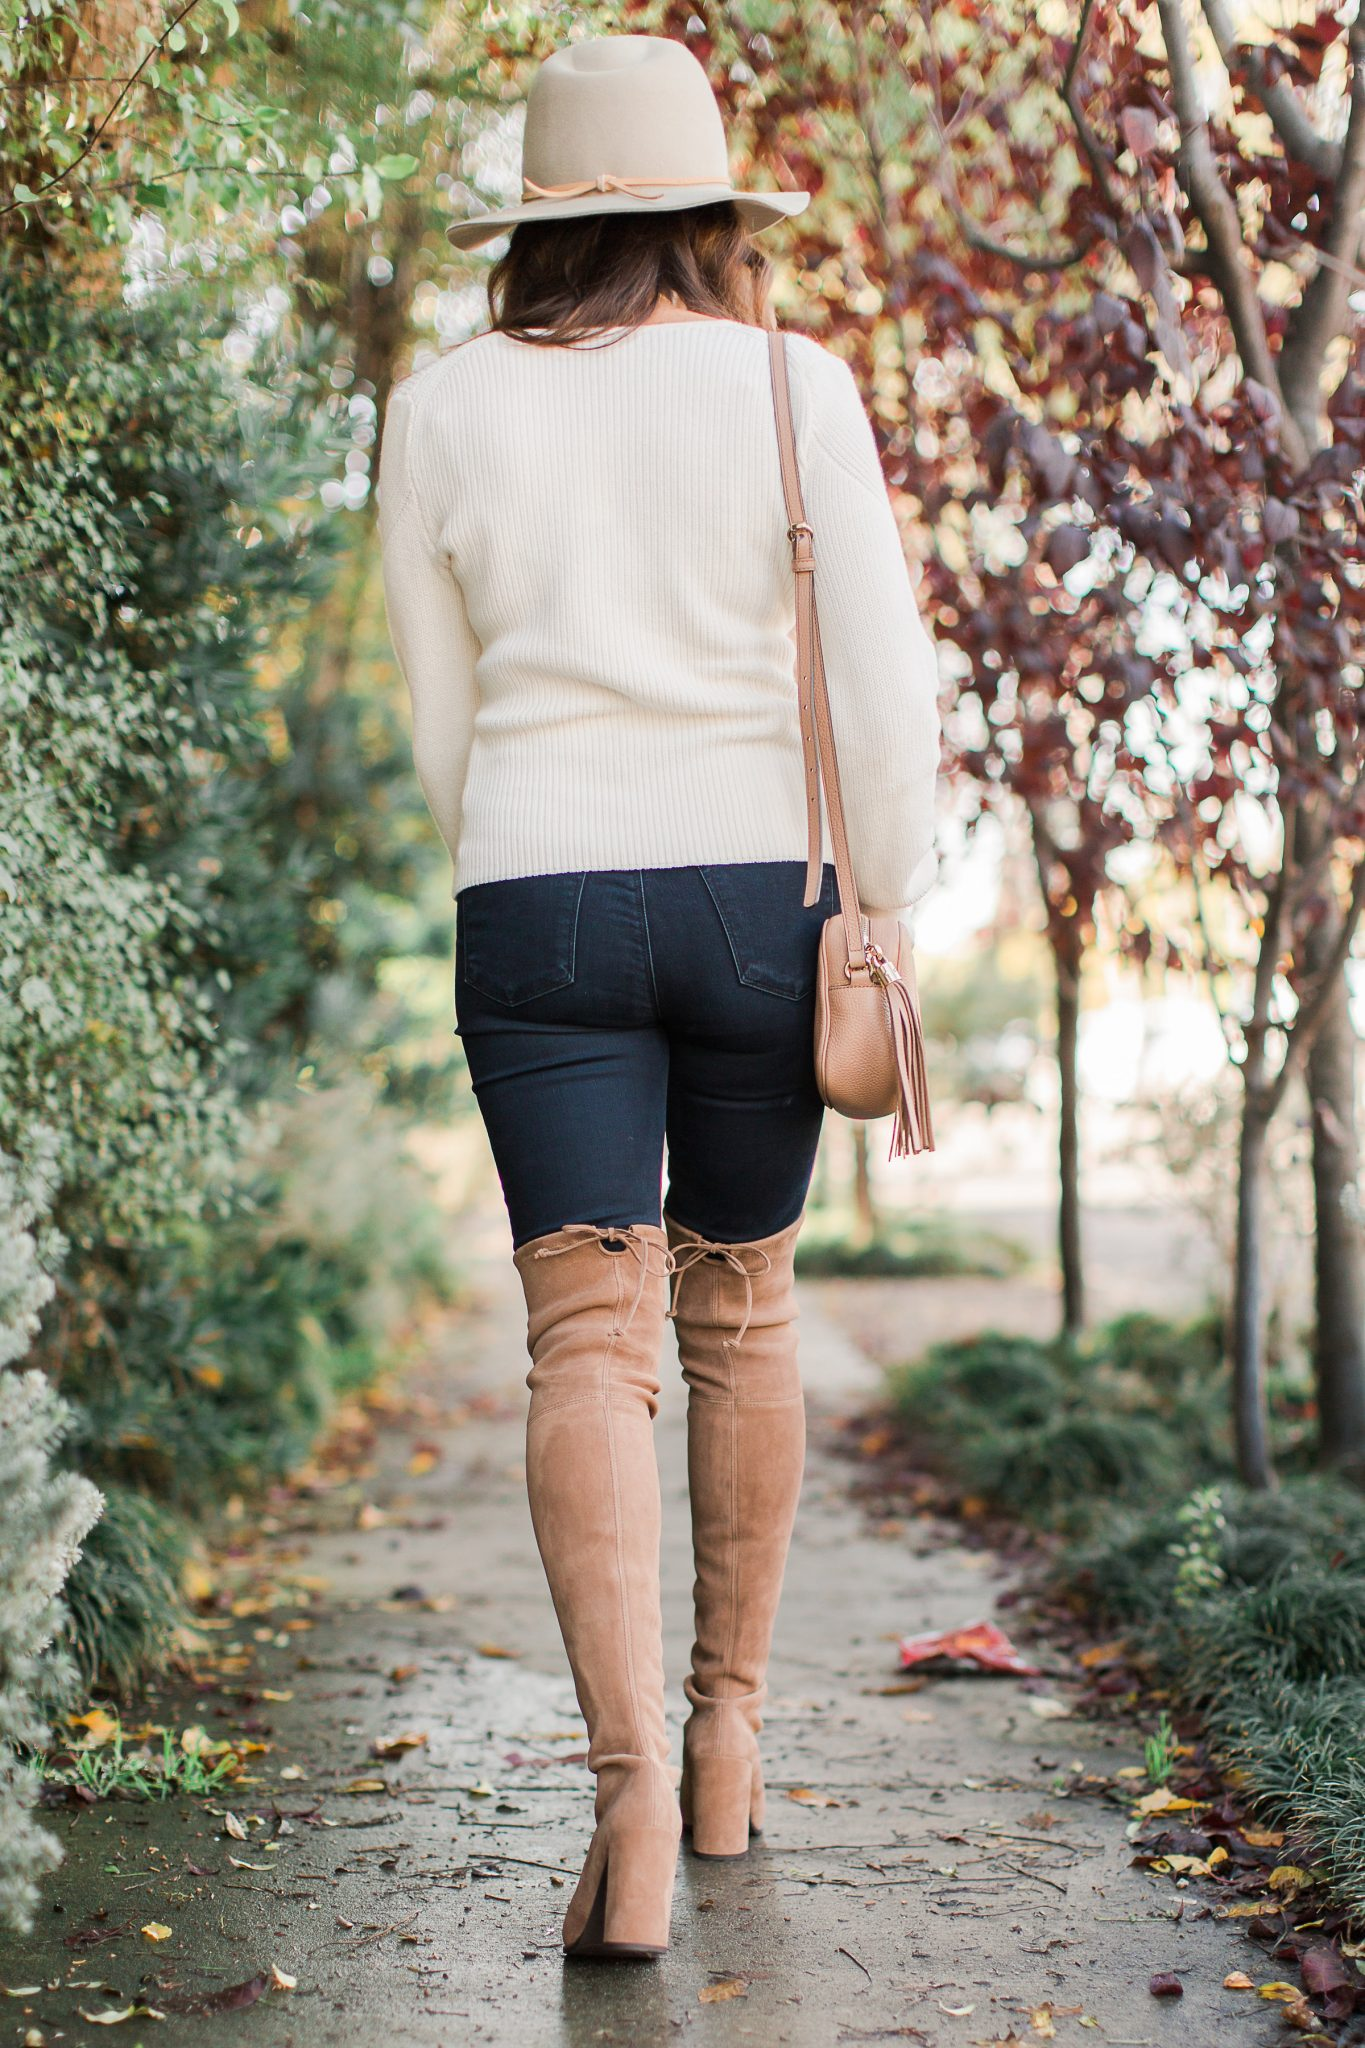 Stuart Weitzman hiline over the knee boots in chesetnut - Shopbop Sale Spring Picks featured by popular Orange County fashion blogger, Maxie Elle